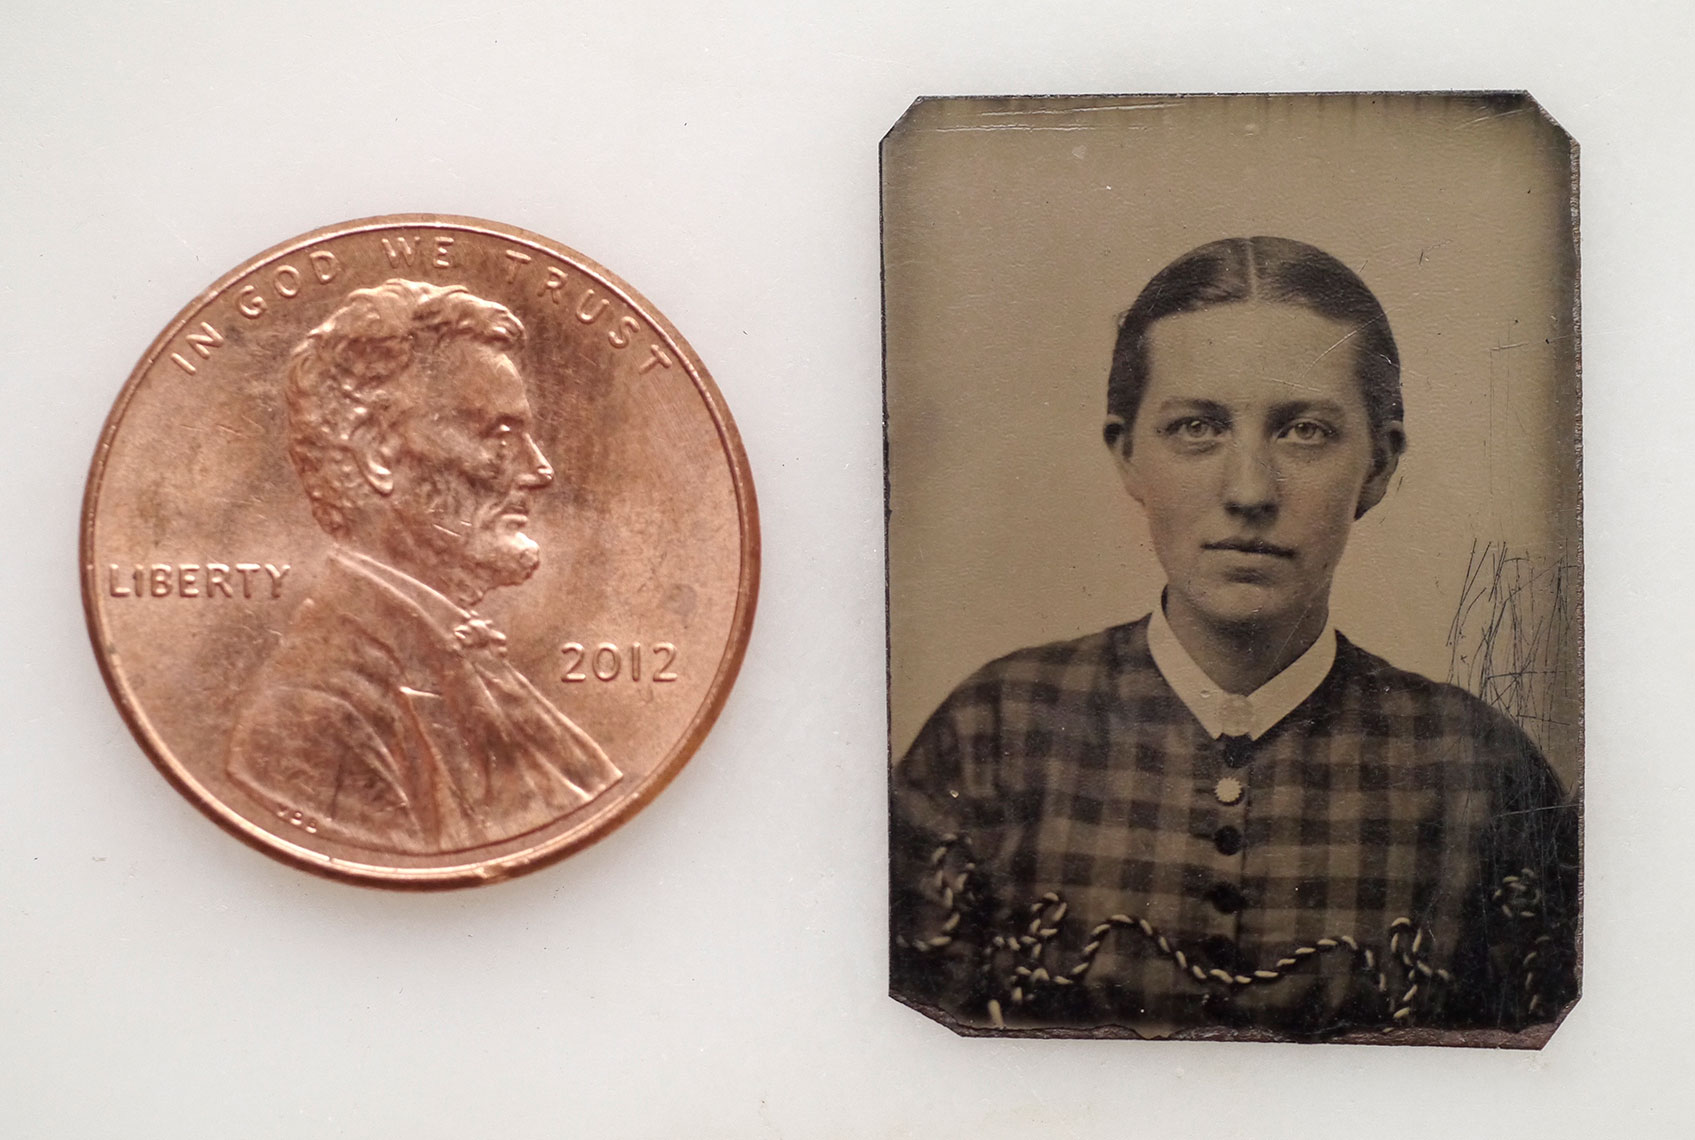 Tintype-and-Penny.jpg